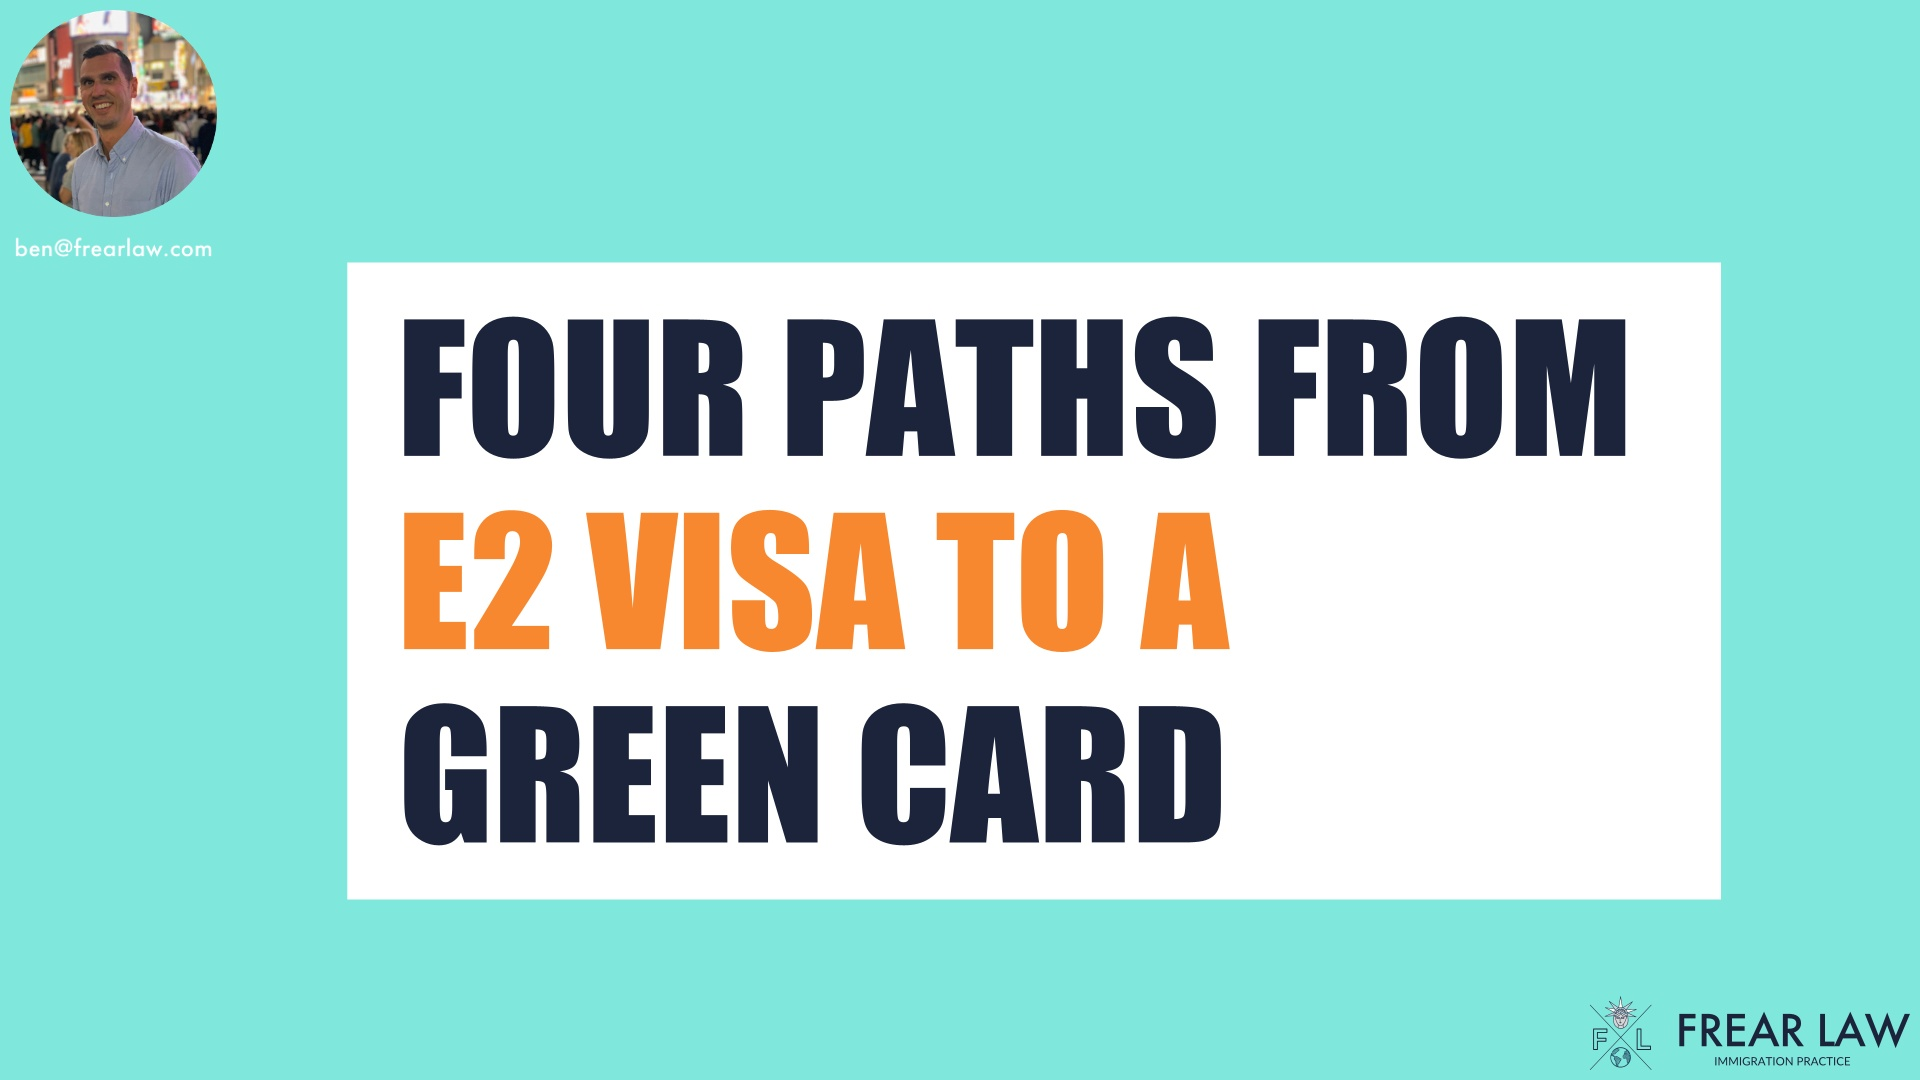 FOUR PATHS FROM E2 VISA TO A GREEN CARD